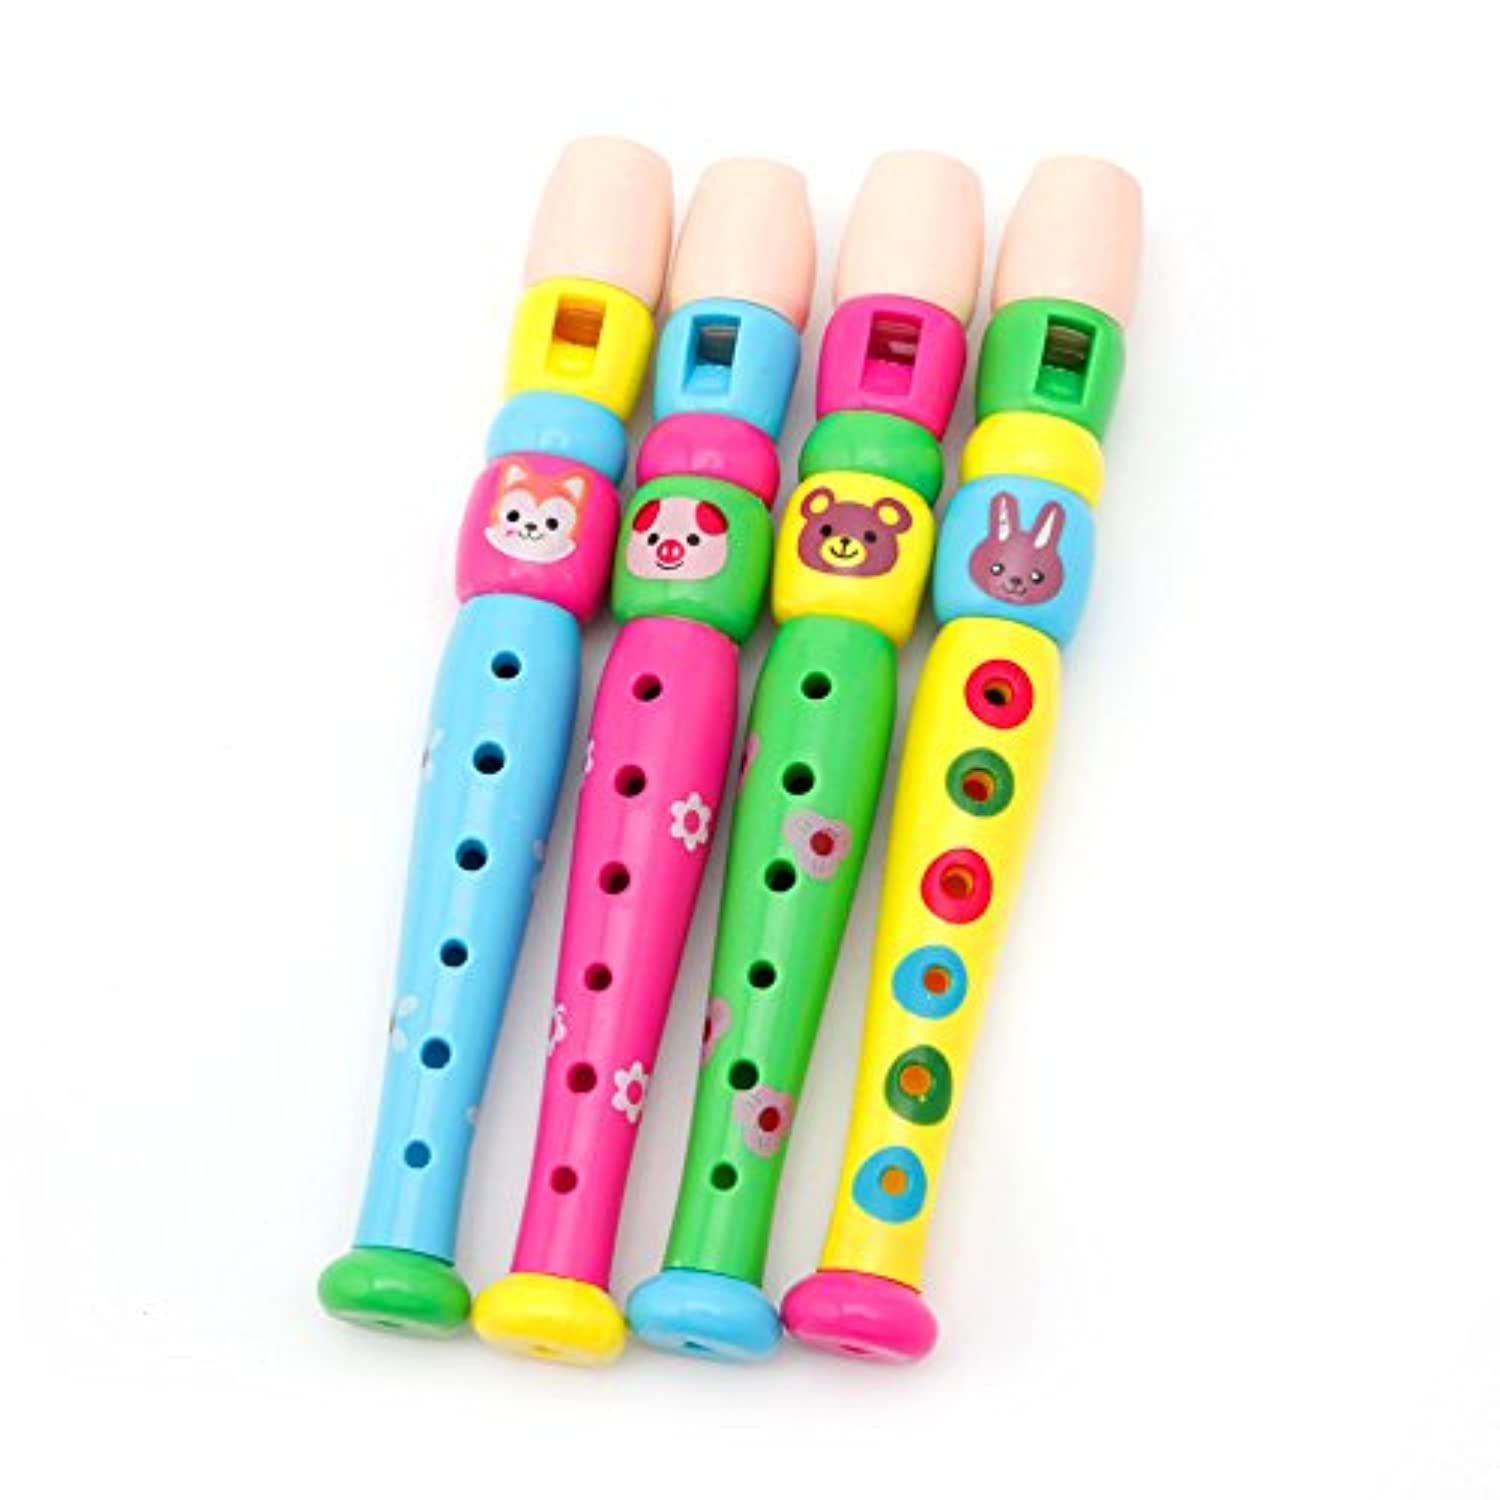 Stebcece Kid Piccolo Flute Musical Instrument Early Learning Educational Toy For Children